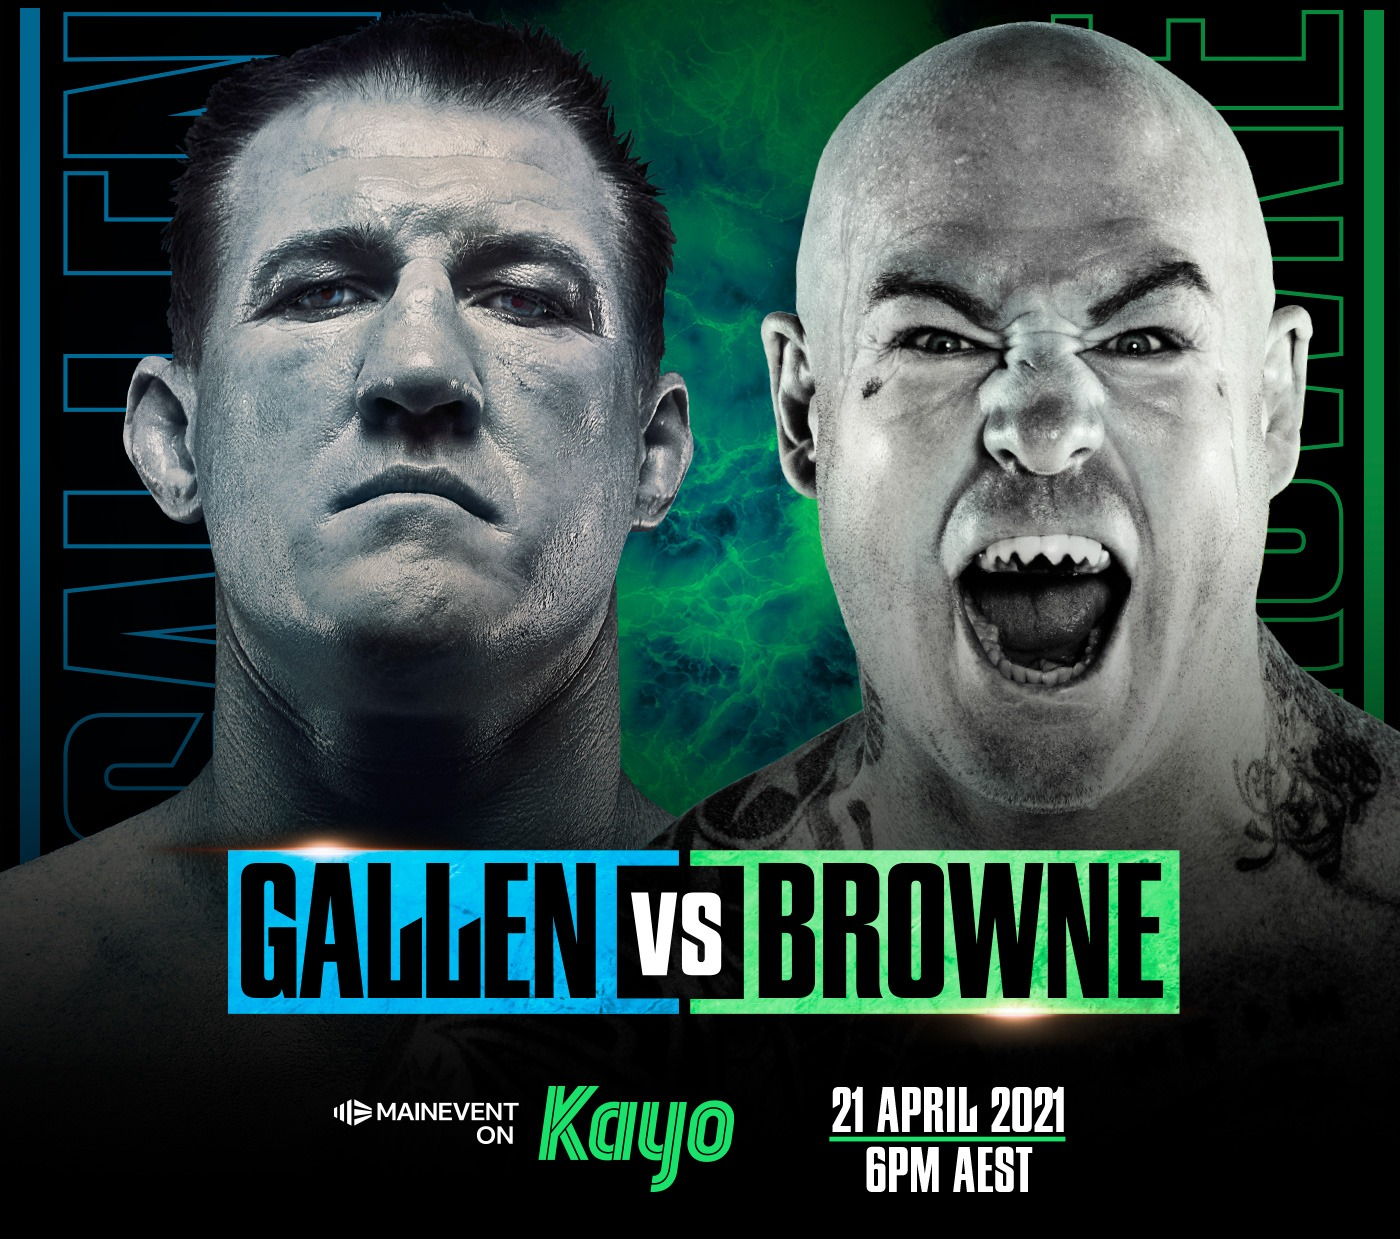 GALLEN vs BROWNE